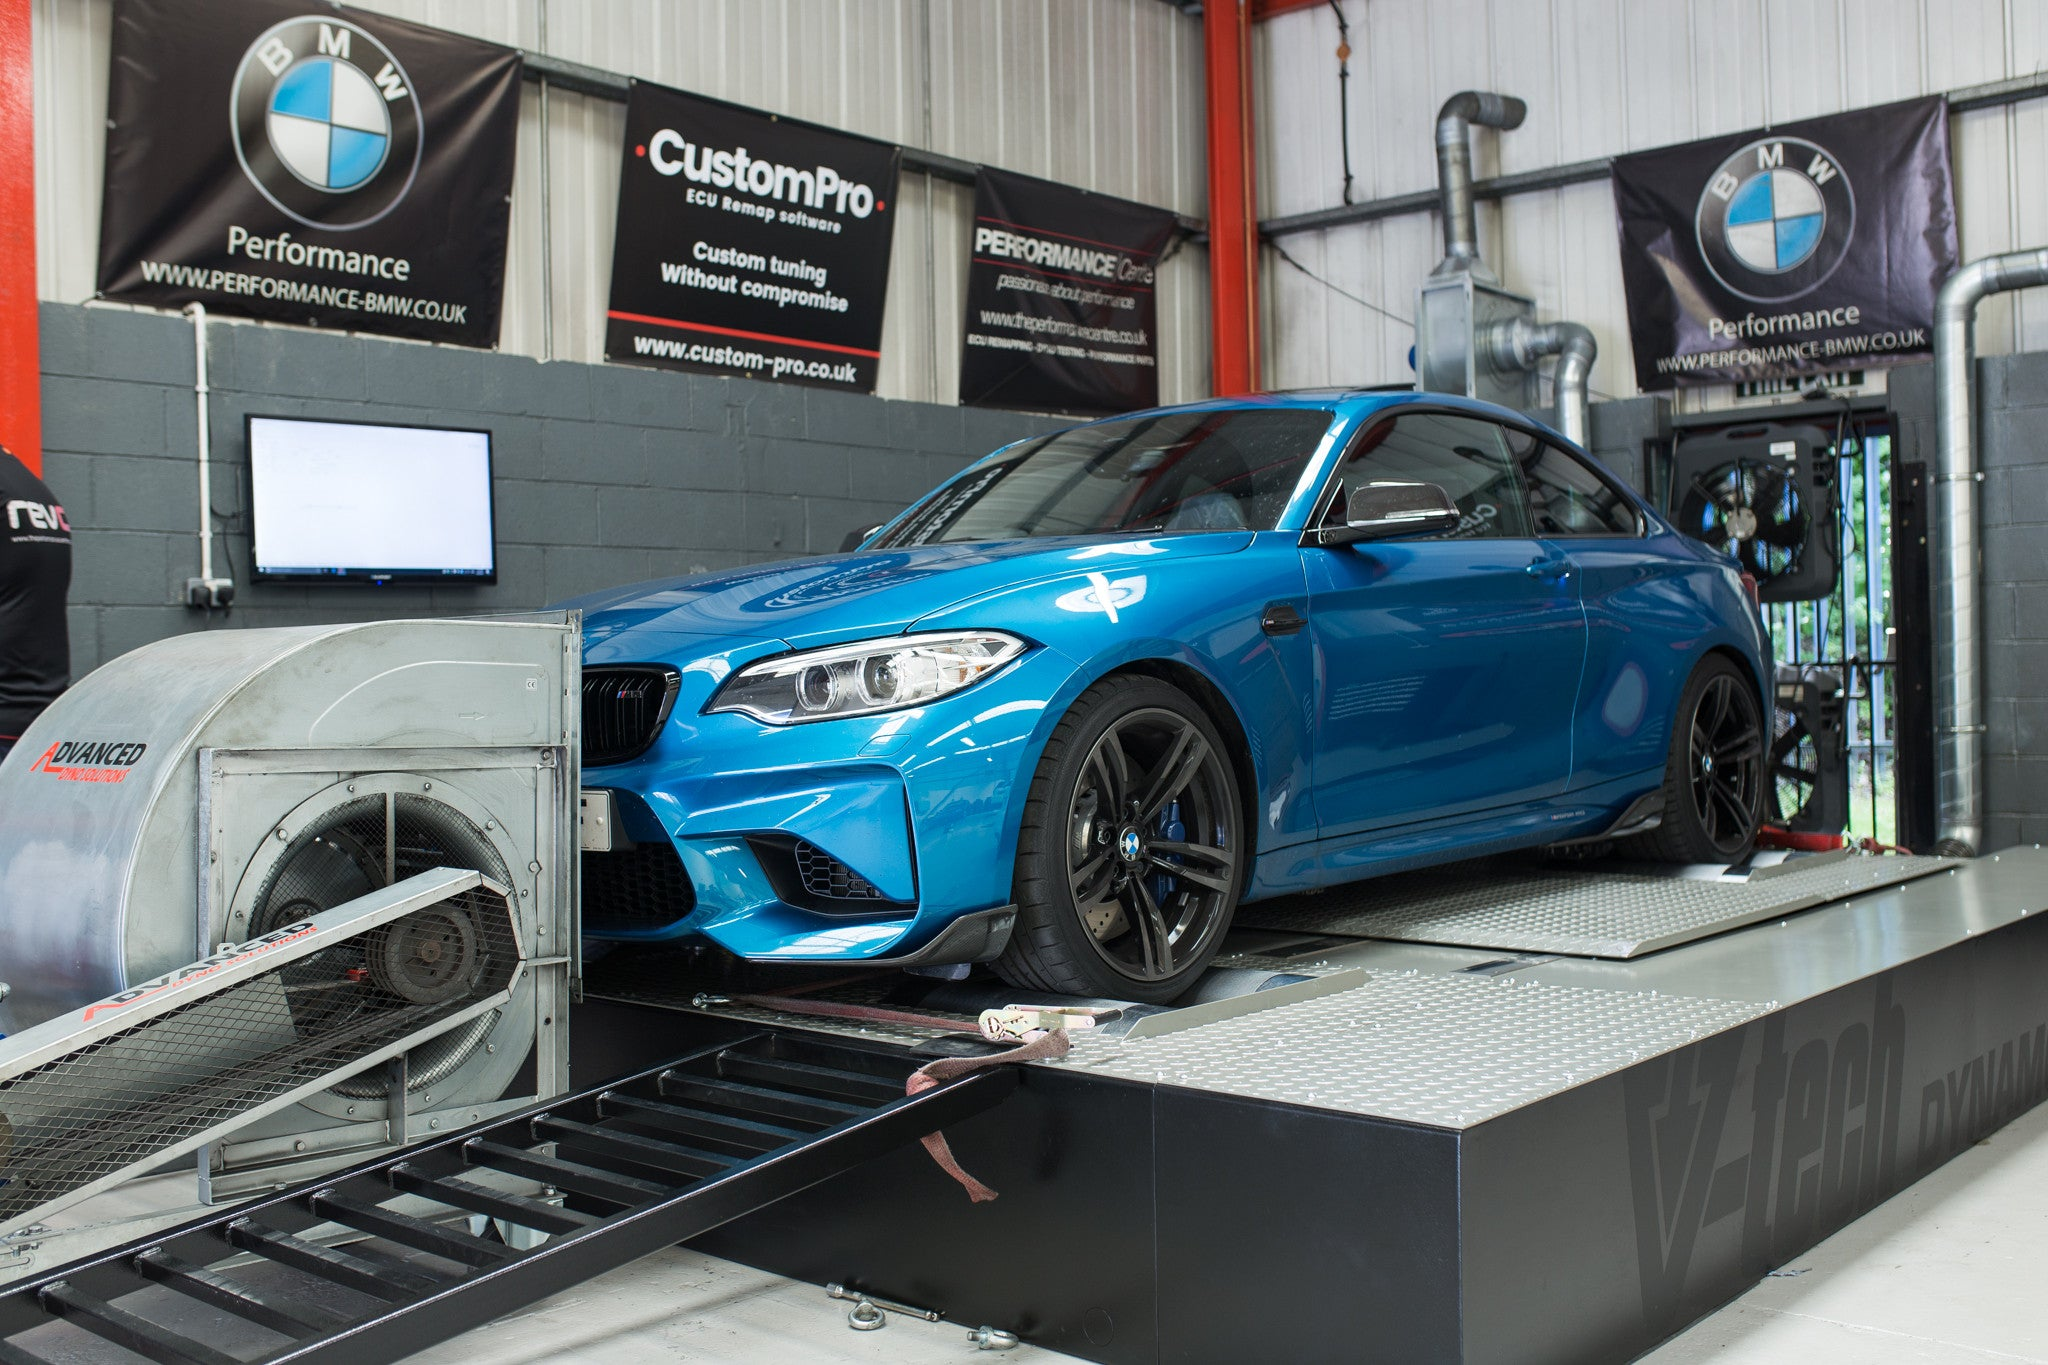 BMW M2- JB4, decat downpipe, BMS intercooler and Remus cat-back